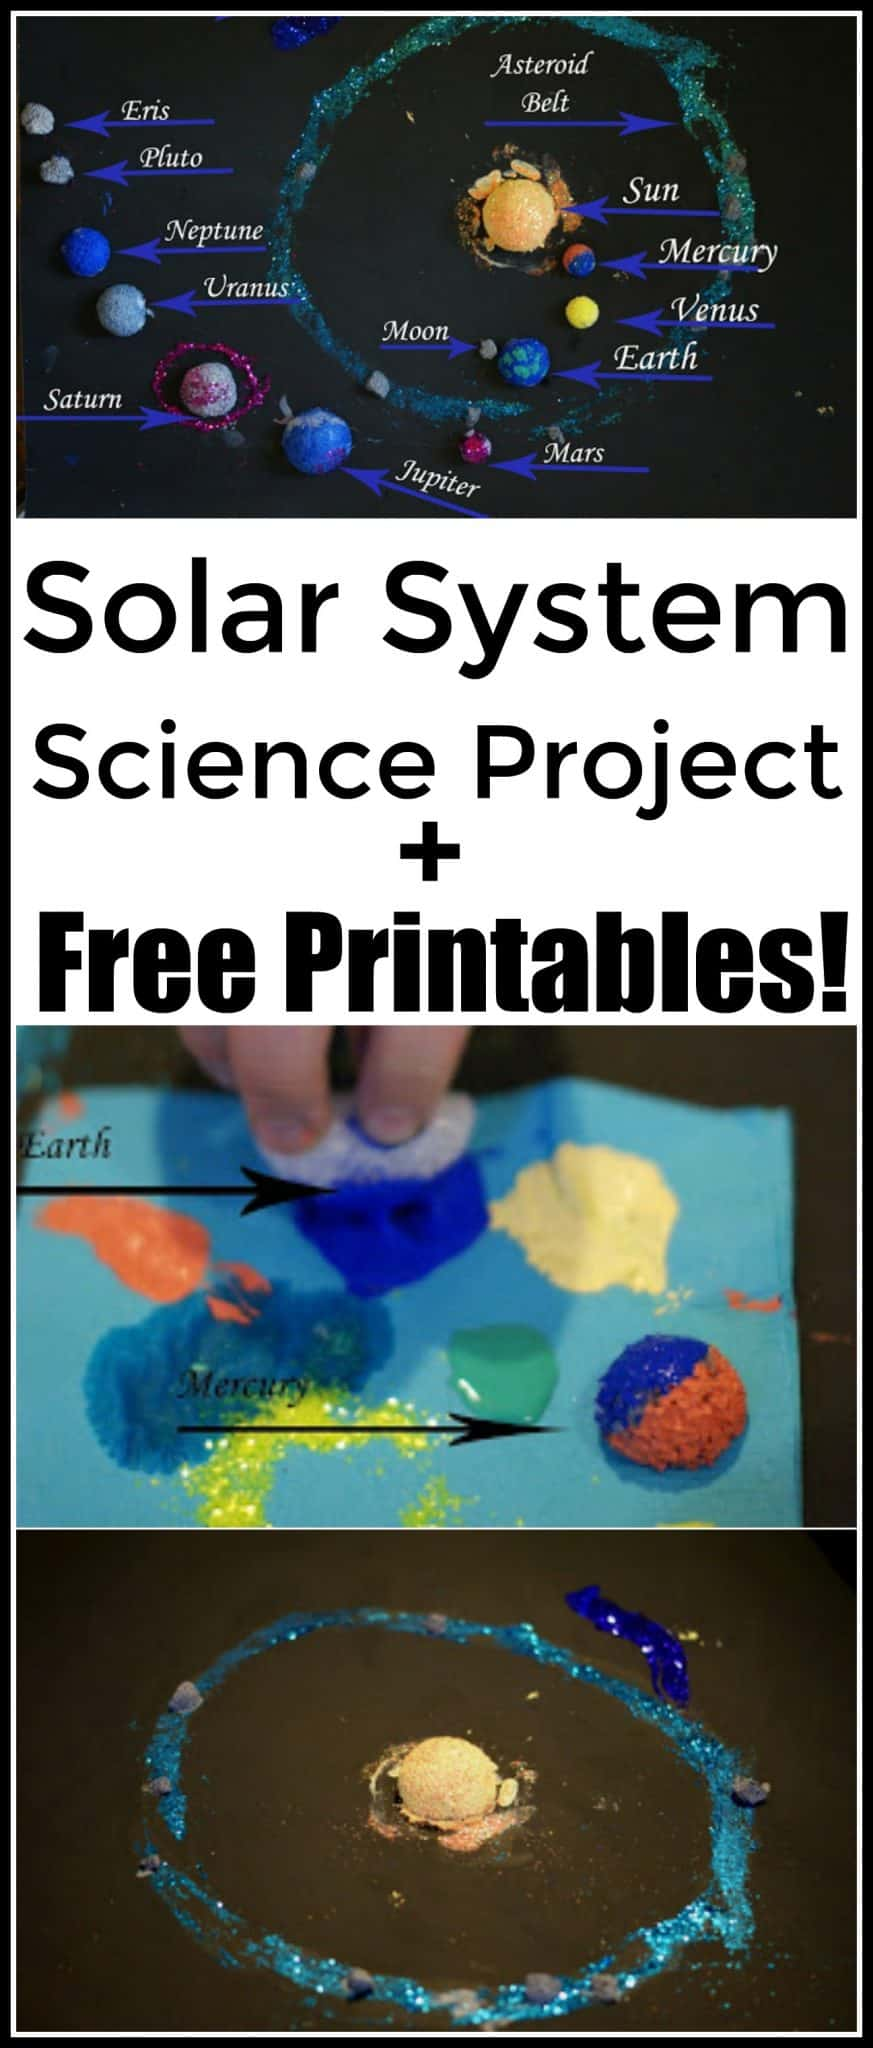 Solar System Science Project and Free Printables - Are you looking for a hands on twist to the old fashioned solar system Science project? - #Science #stem #handsonlearning #homeschool #scienceproject #solarsystem #ScienceFair #homeschooling #education #edchat